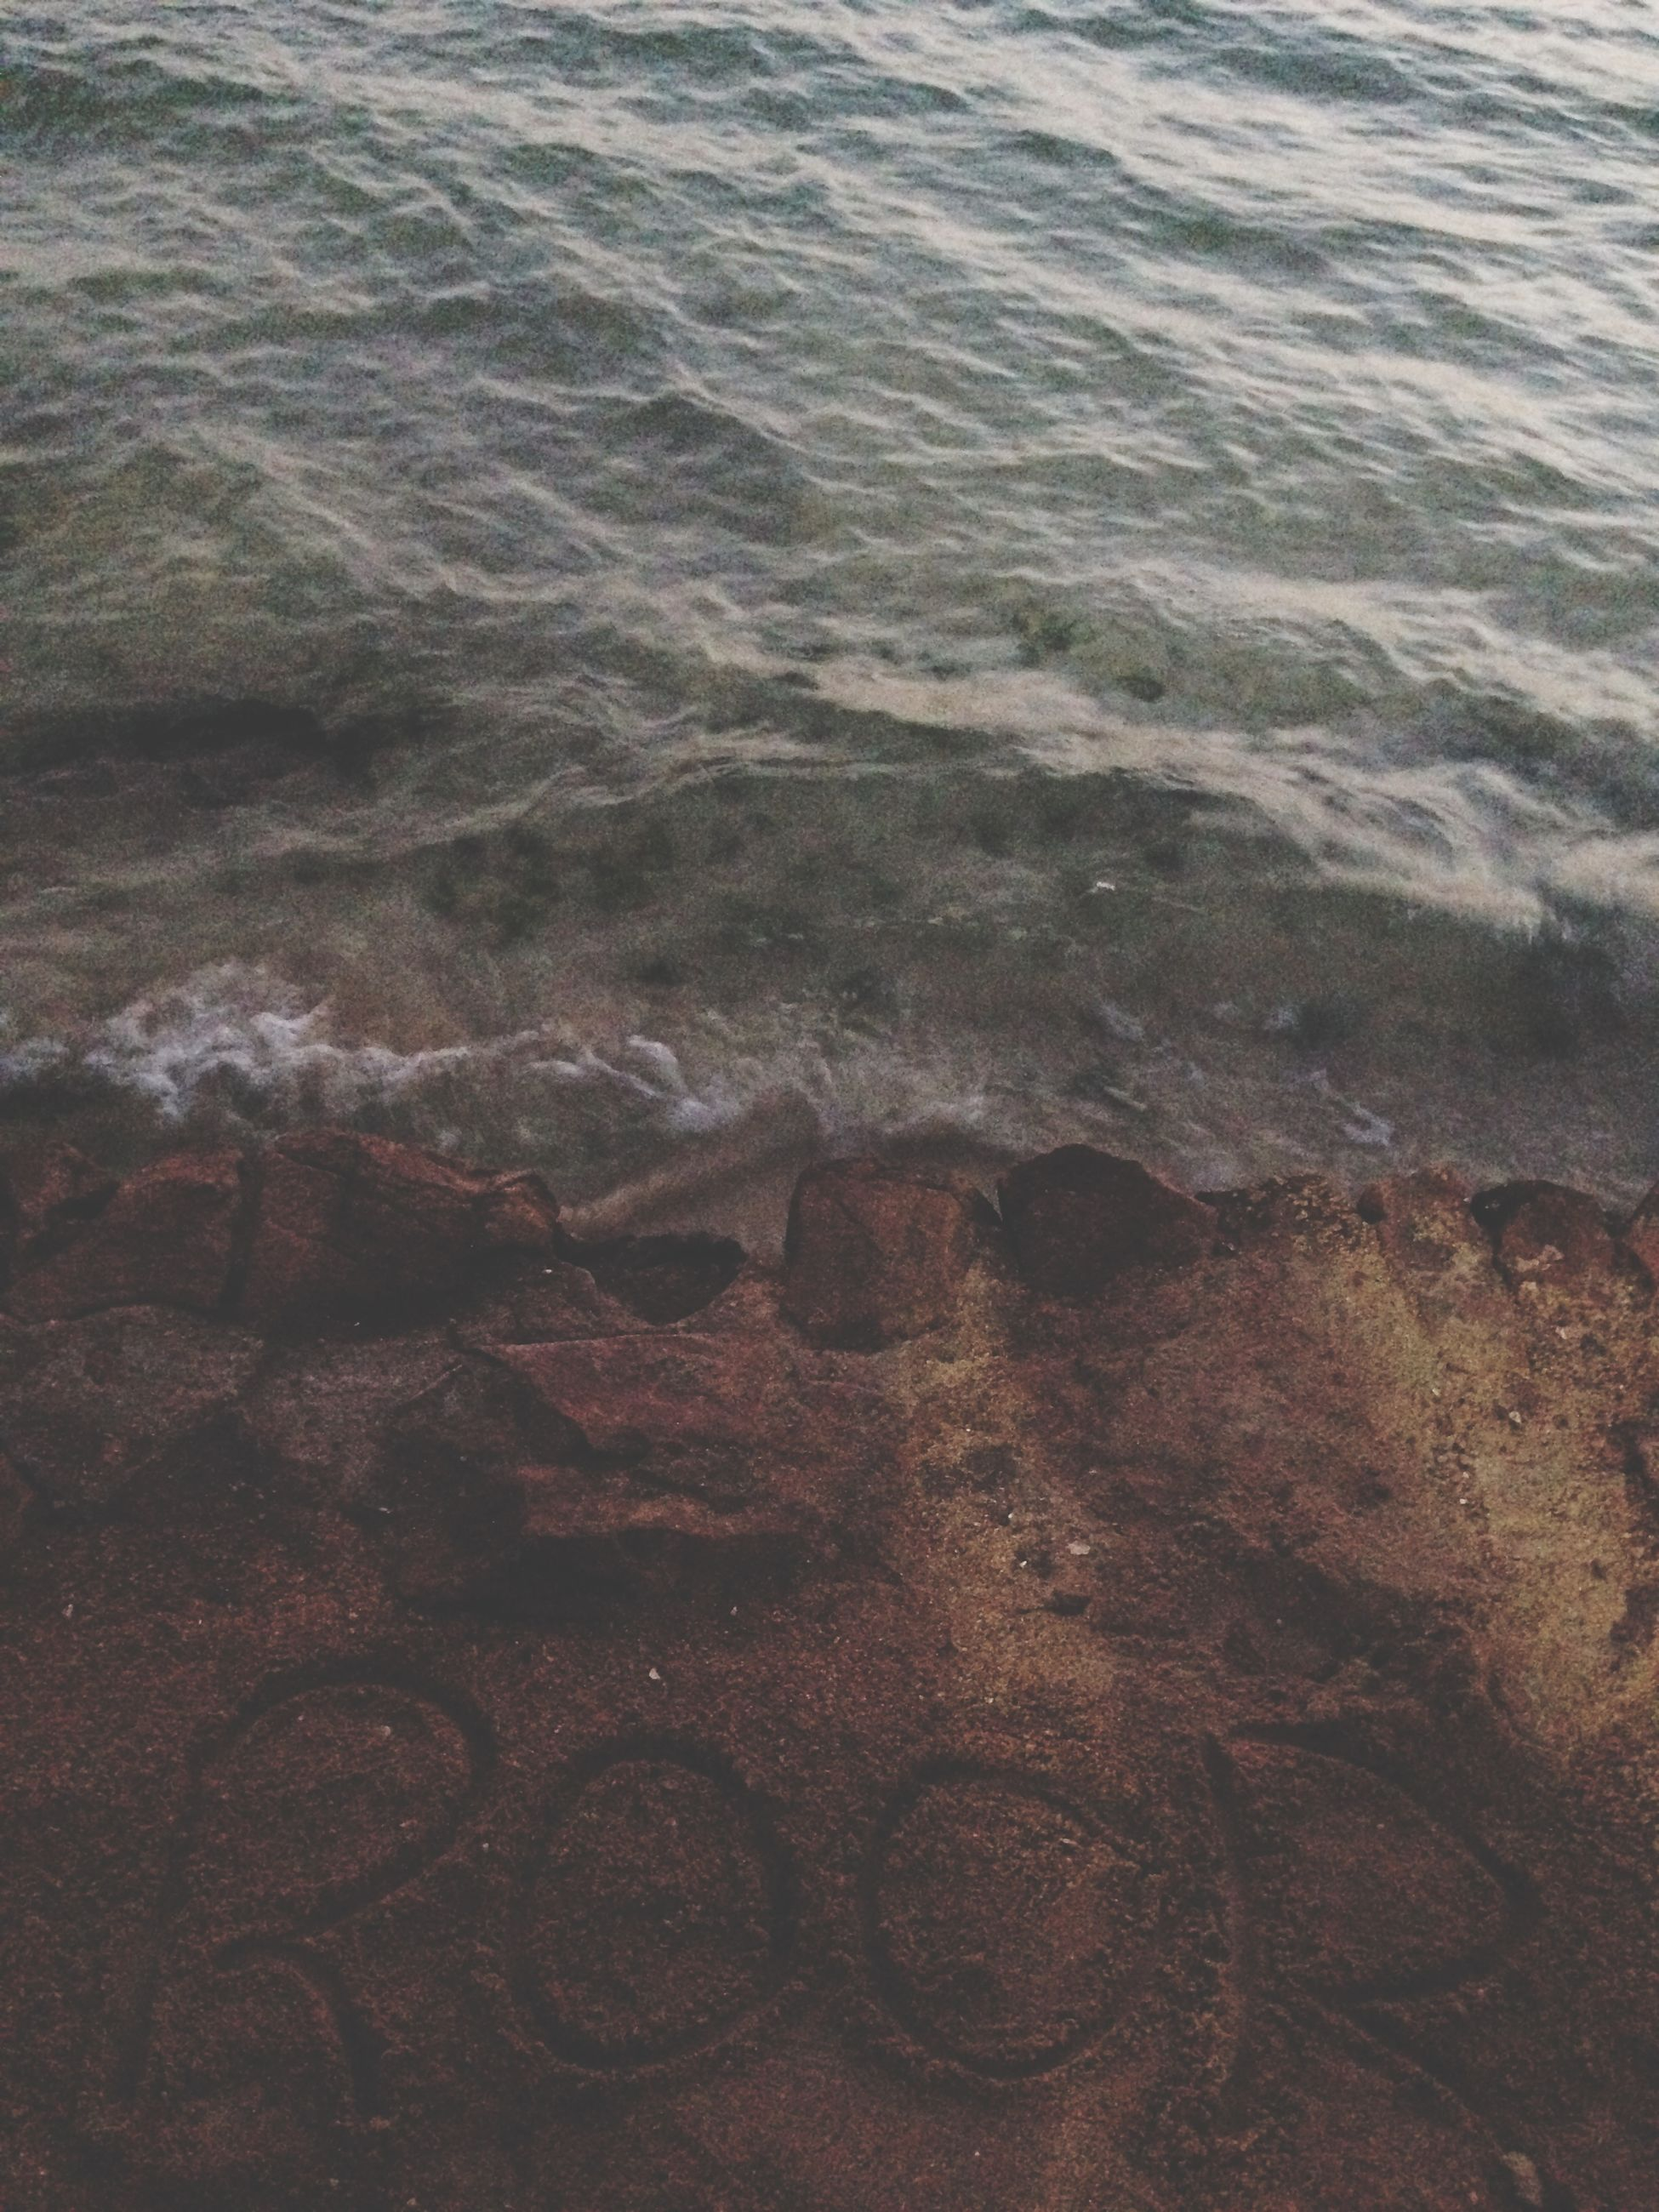 water, high angle view, full frame, backgrounds, sea, nature, beach, rippled, pattern, tranquility, textured, day, outdoors, no people, shore, wave, sunlight, beauty in nature, sand, close-up